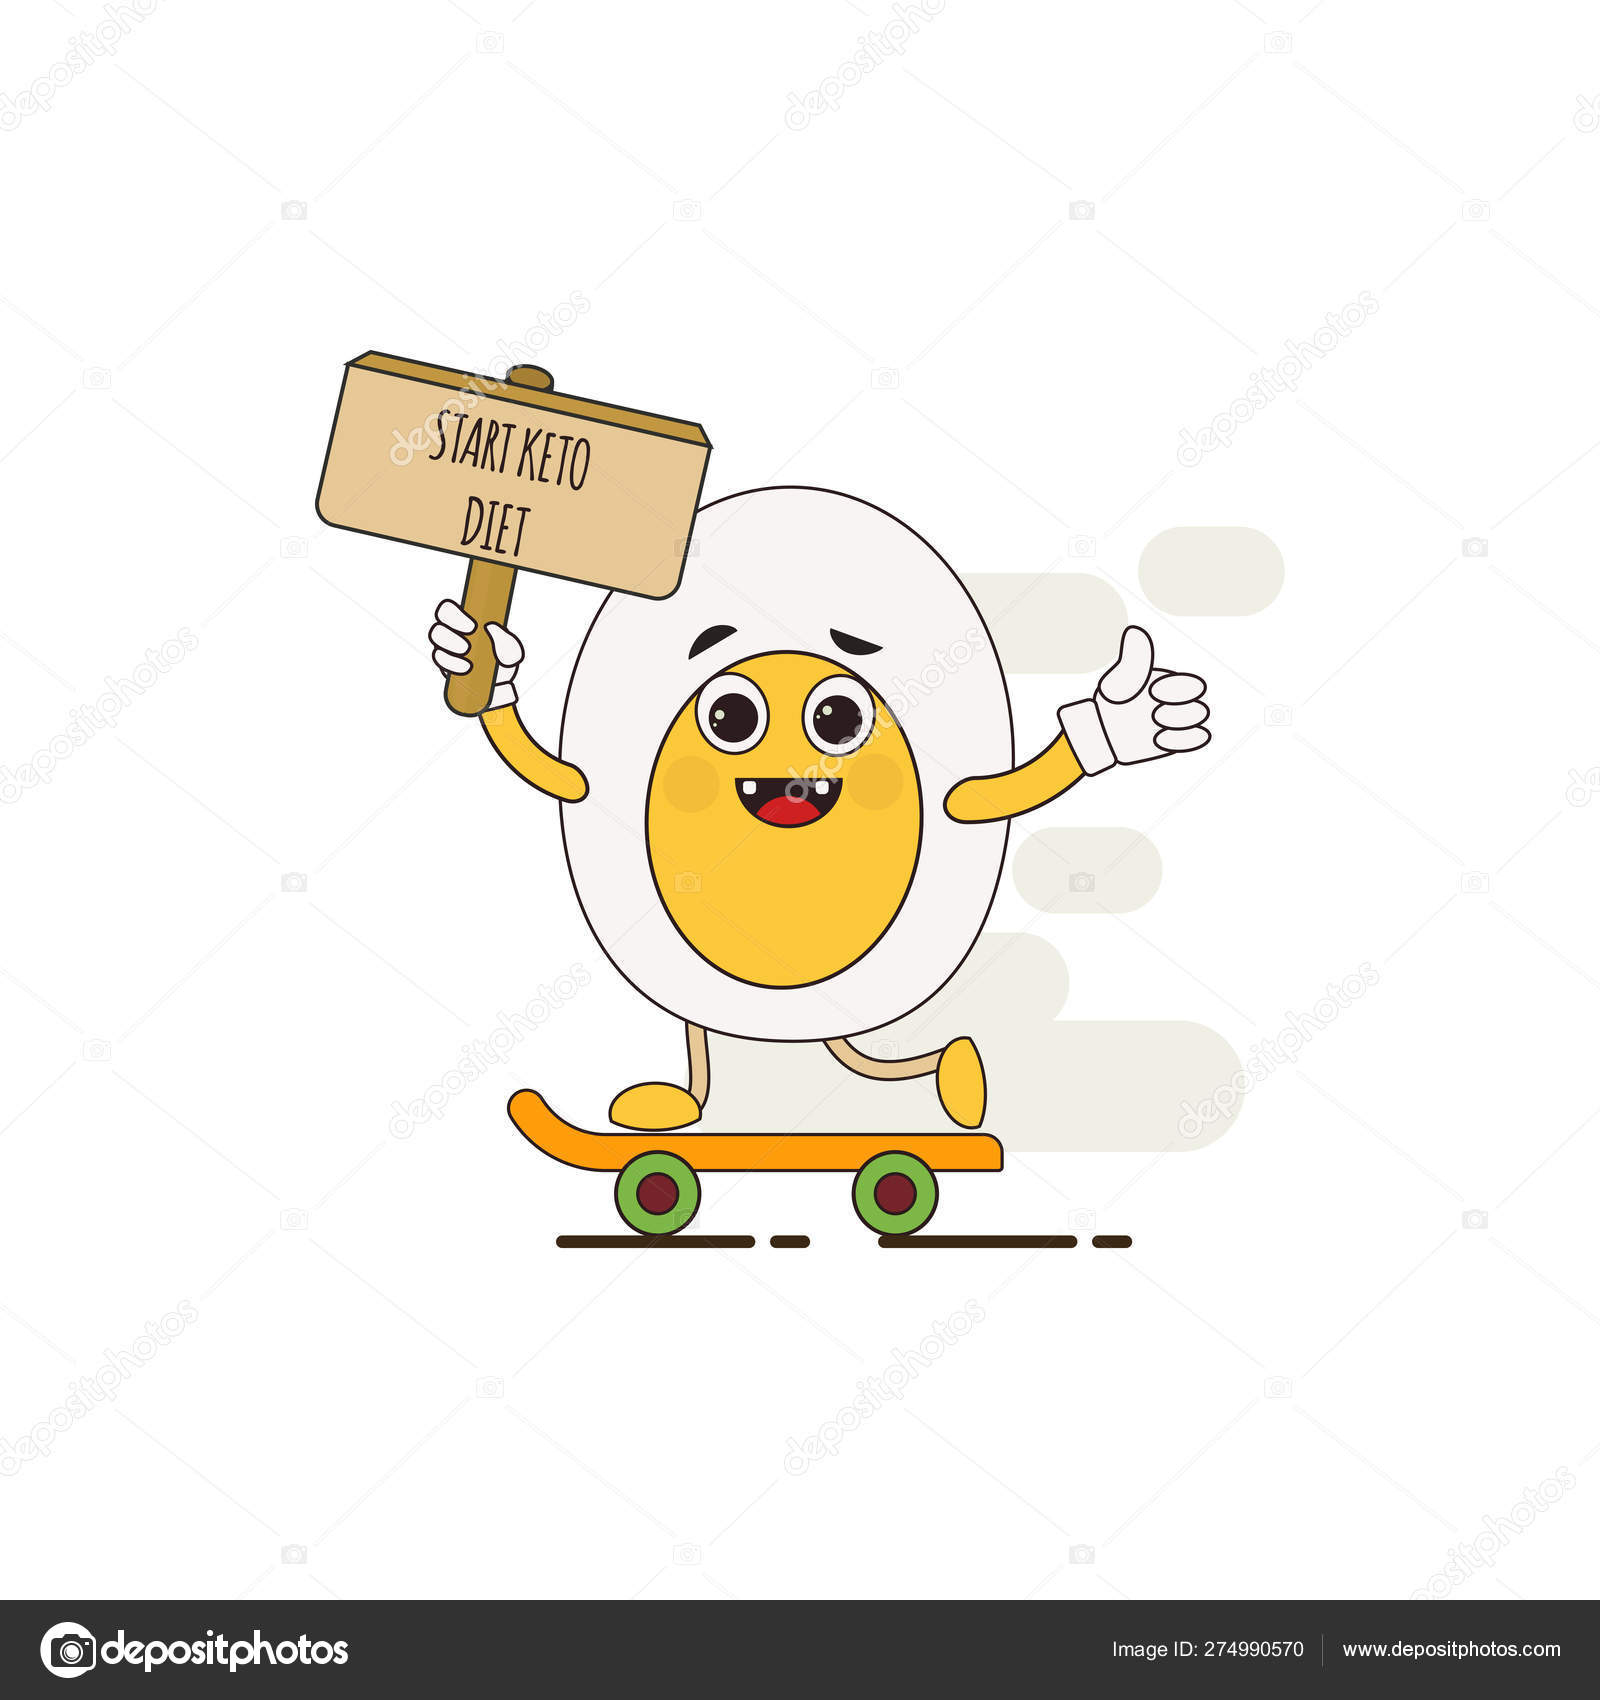 Funny Cute Egg Character Start Keto Diet Ketogenic Diet For Weight Loss And Treatment Vector Illustration Stock Vector C Kos911 274990570